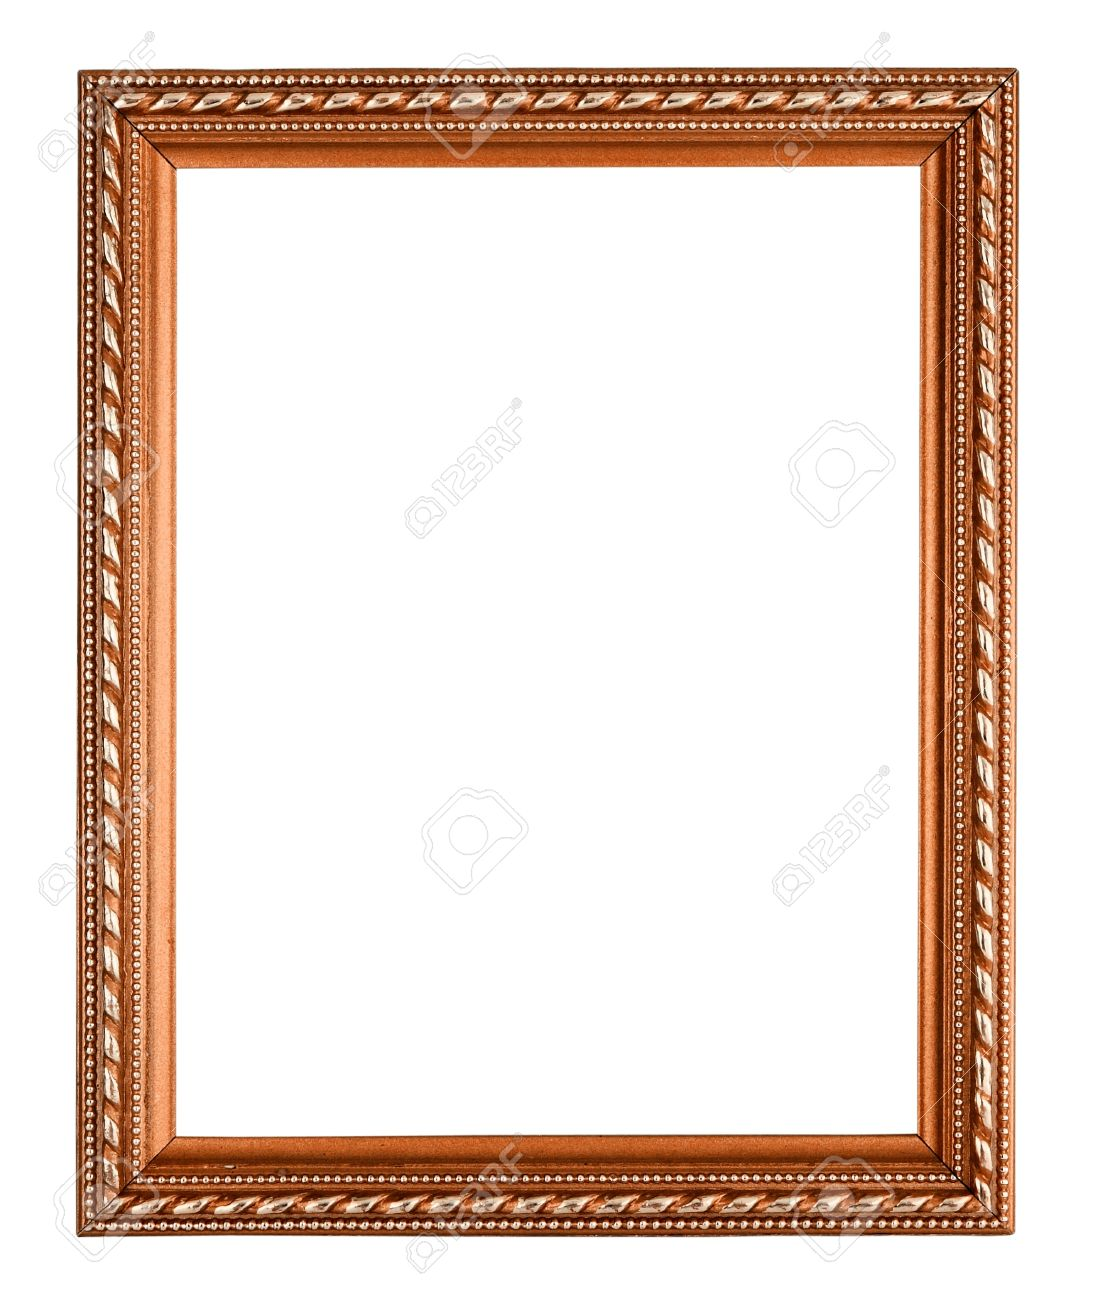 Copper Frame On White Background Stock Photo, Picture And Royalty ...